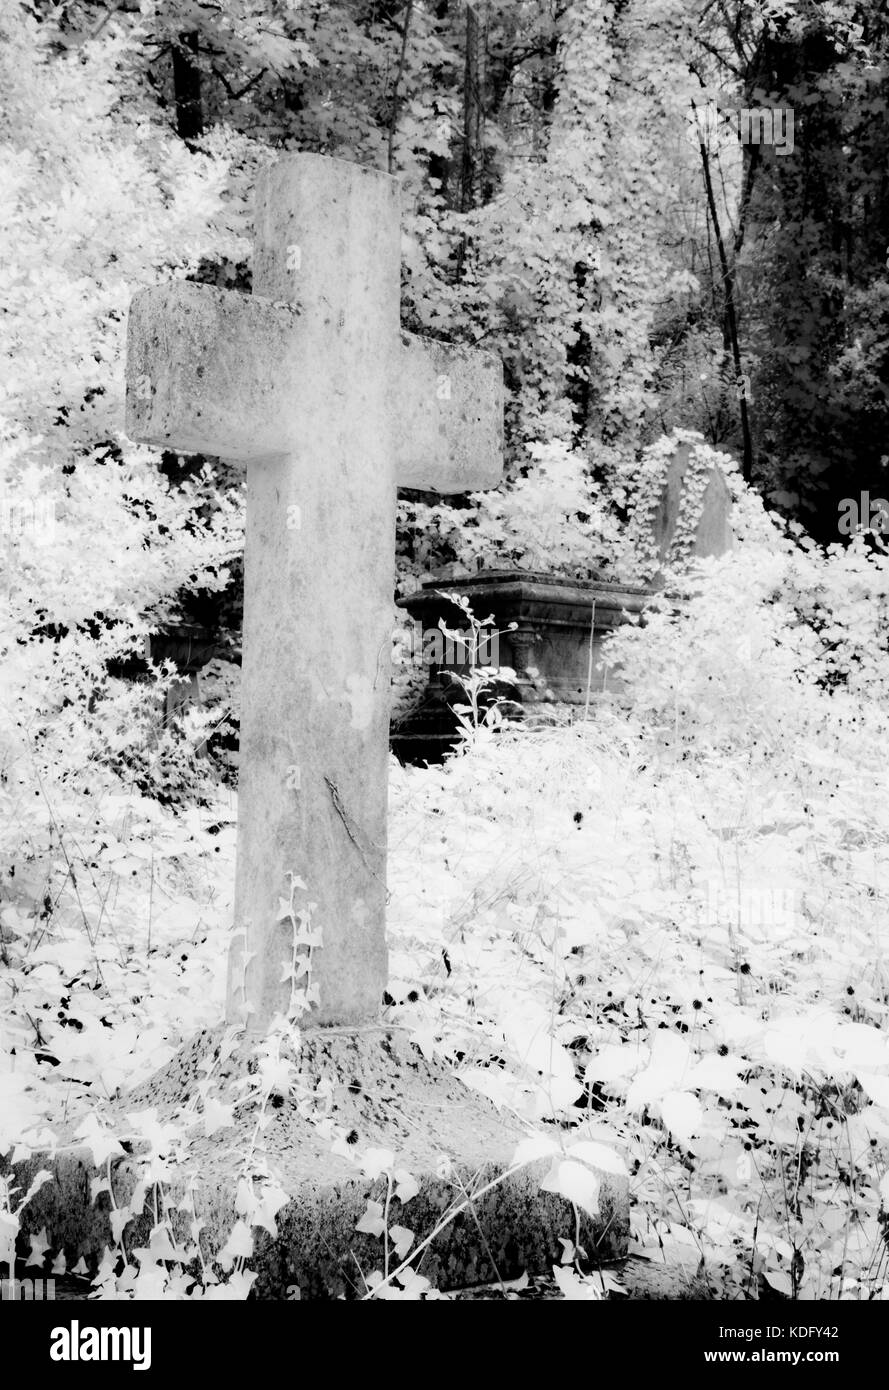 An infrared shot of an old, stone, graveyard cross. - Stock Image